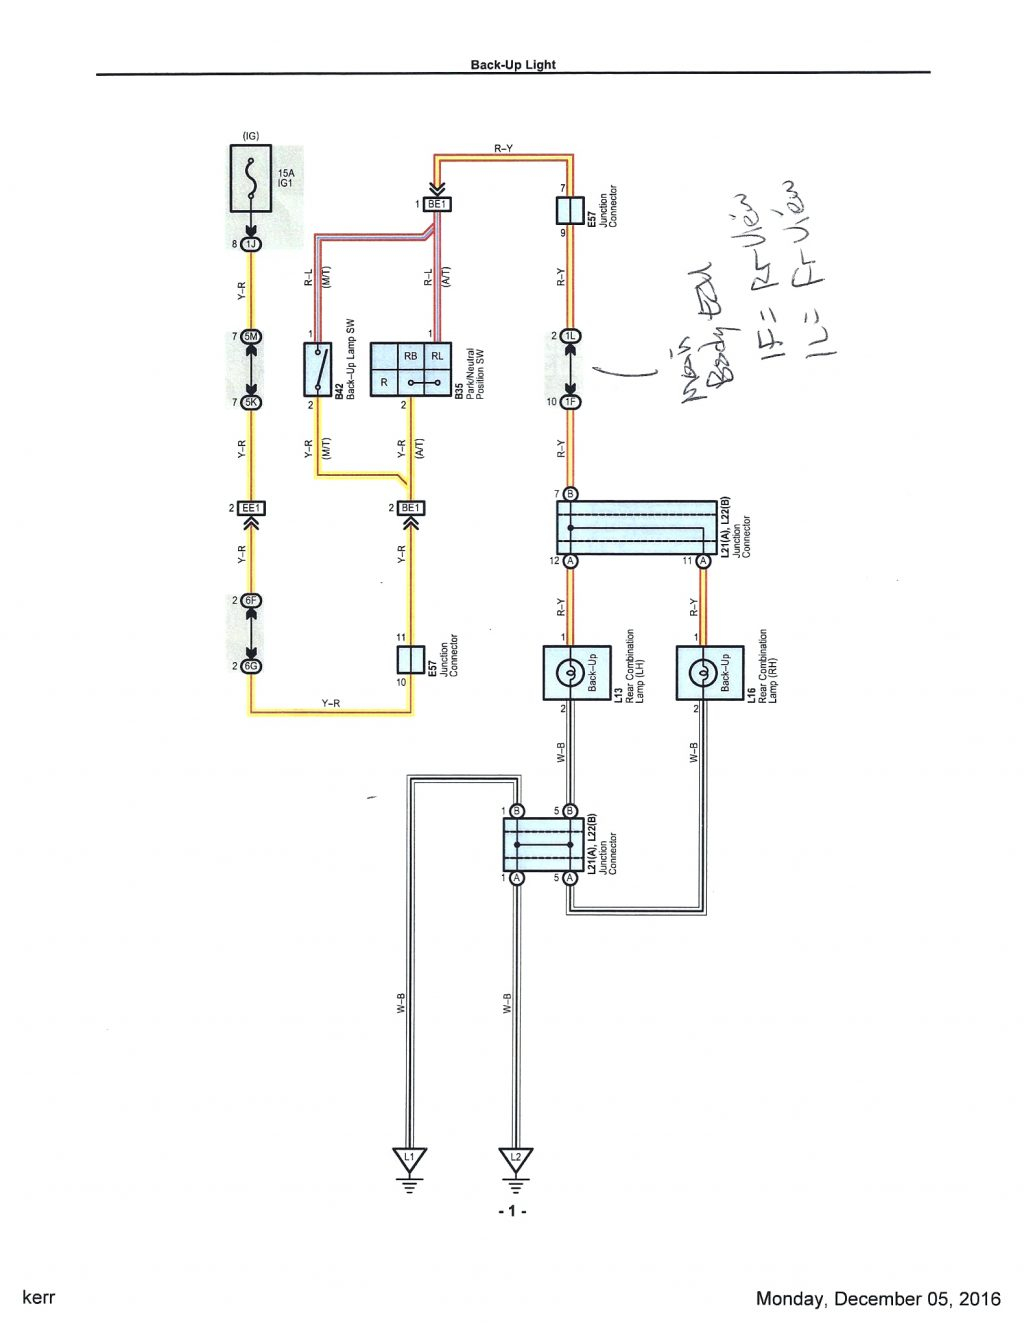 ... l21 30 wiring diagram custom wiring diagram u2022 rh littlewaves co  Nema L5 20R Wiring